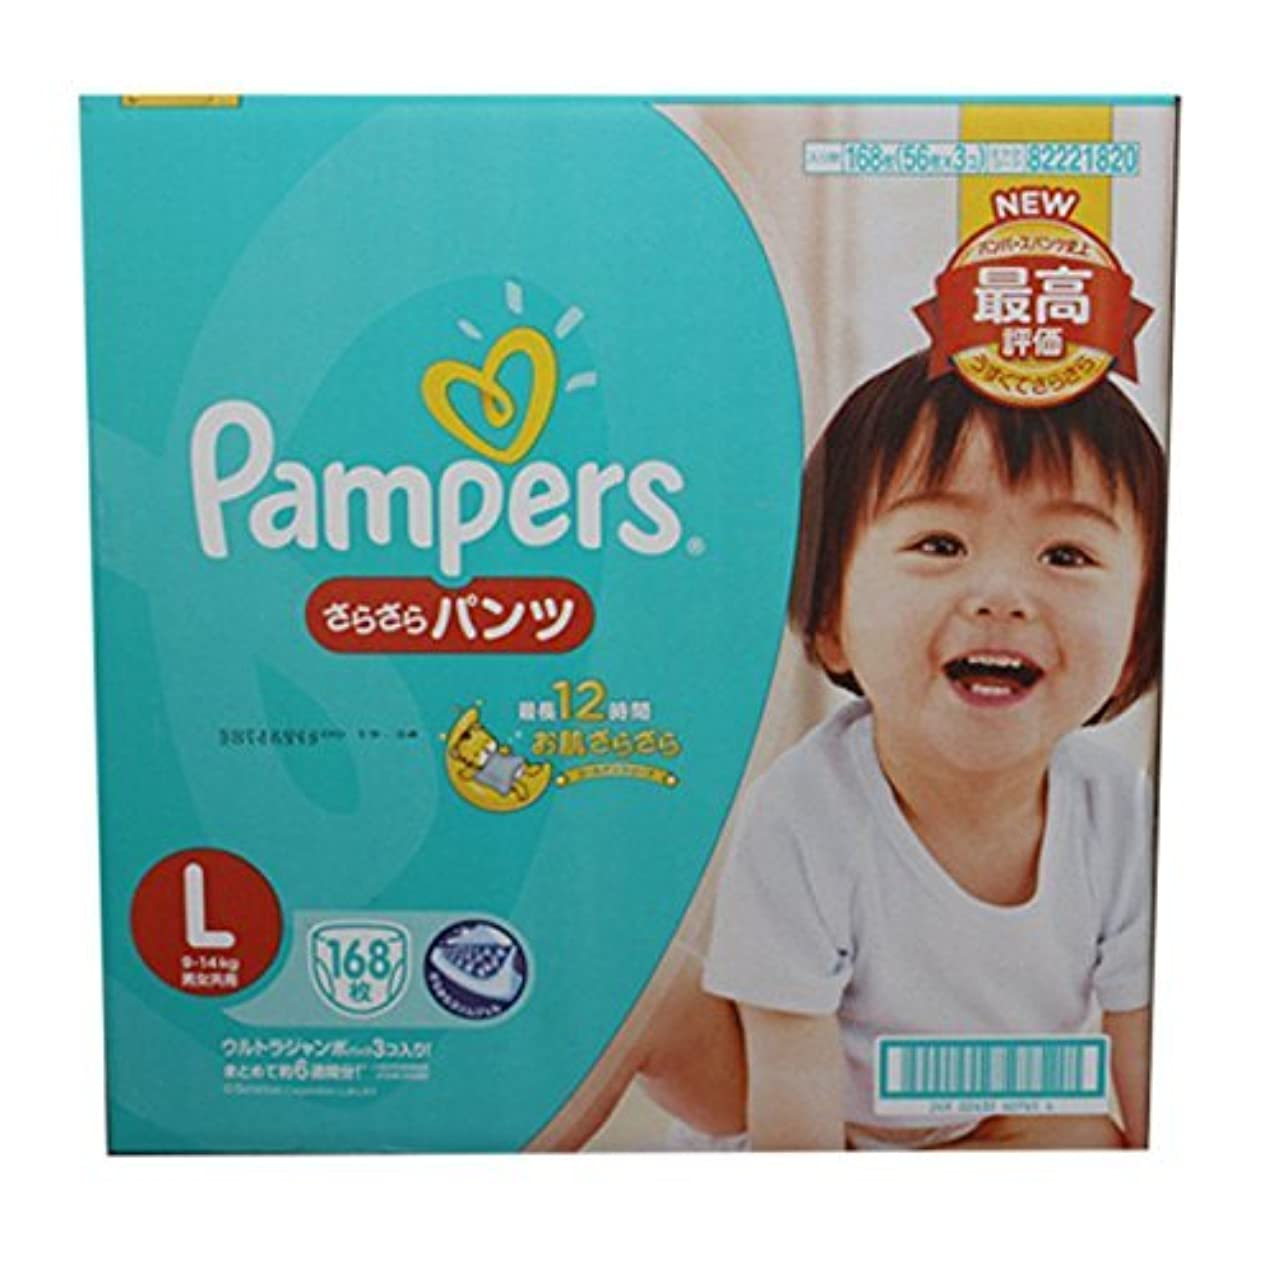 Pampers パンパースさらさらパンツ L 9-14kg 男女兼用 168枚セット(56枚x3)